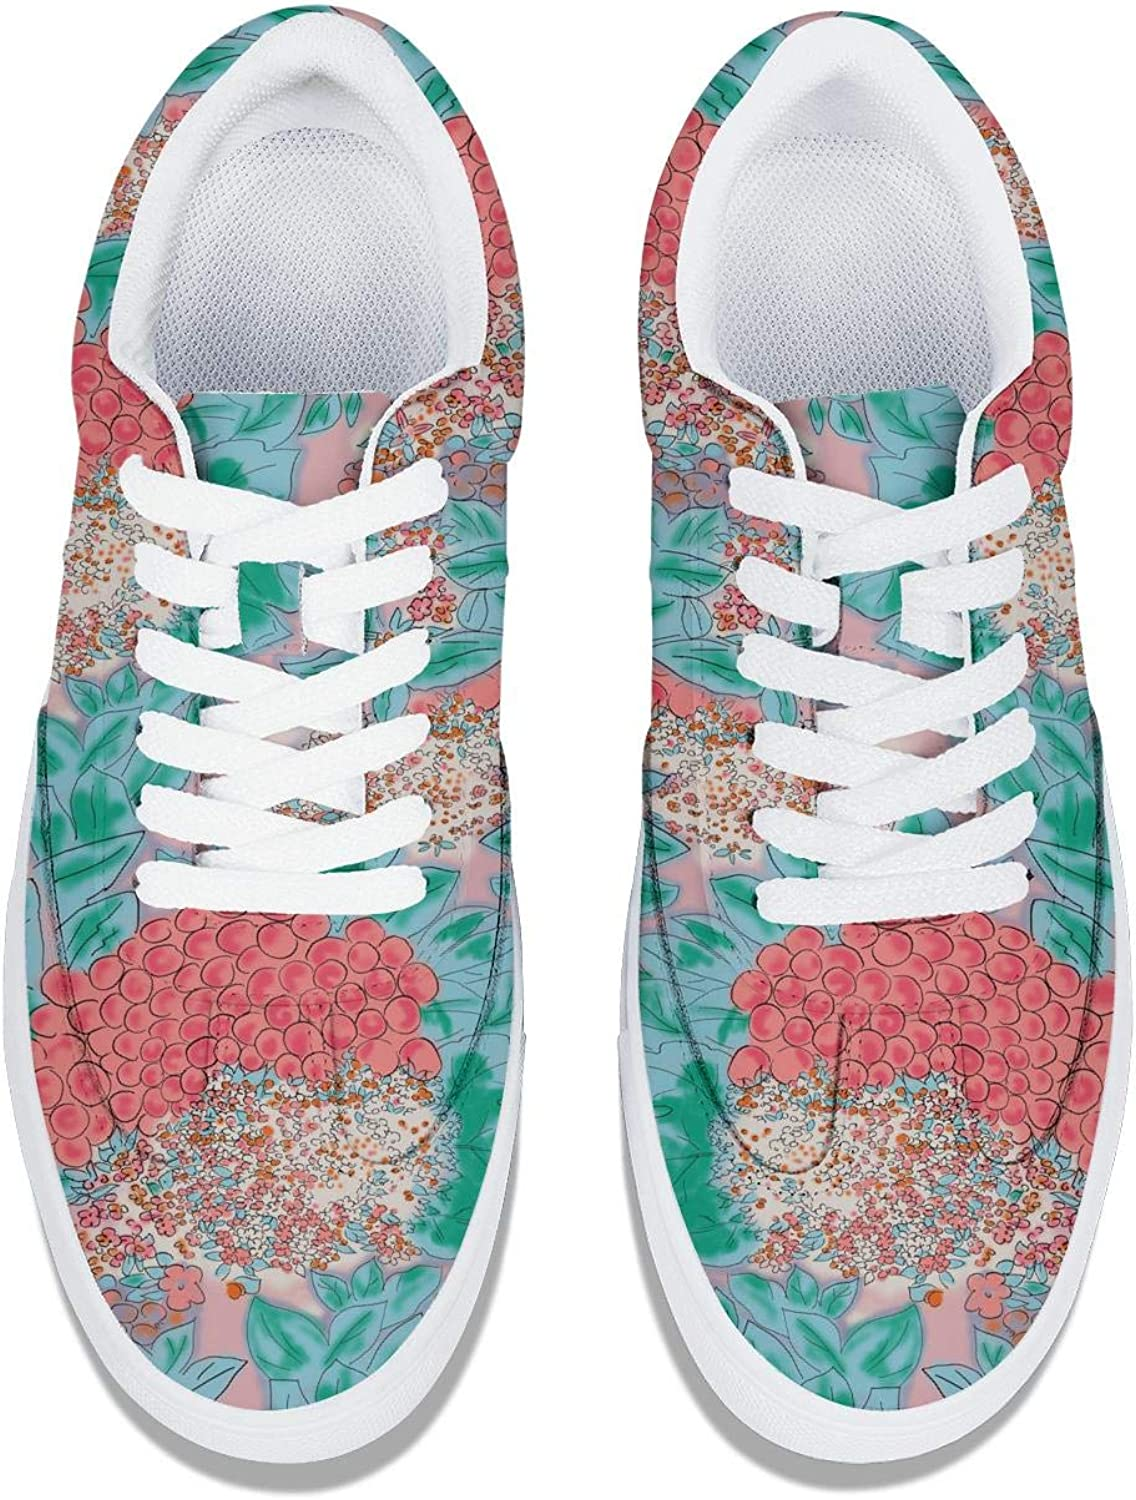 Vintage Floral Pattern Women Lace-Up Leather Sneaker Cute Low Top Comfortable Work Shoes